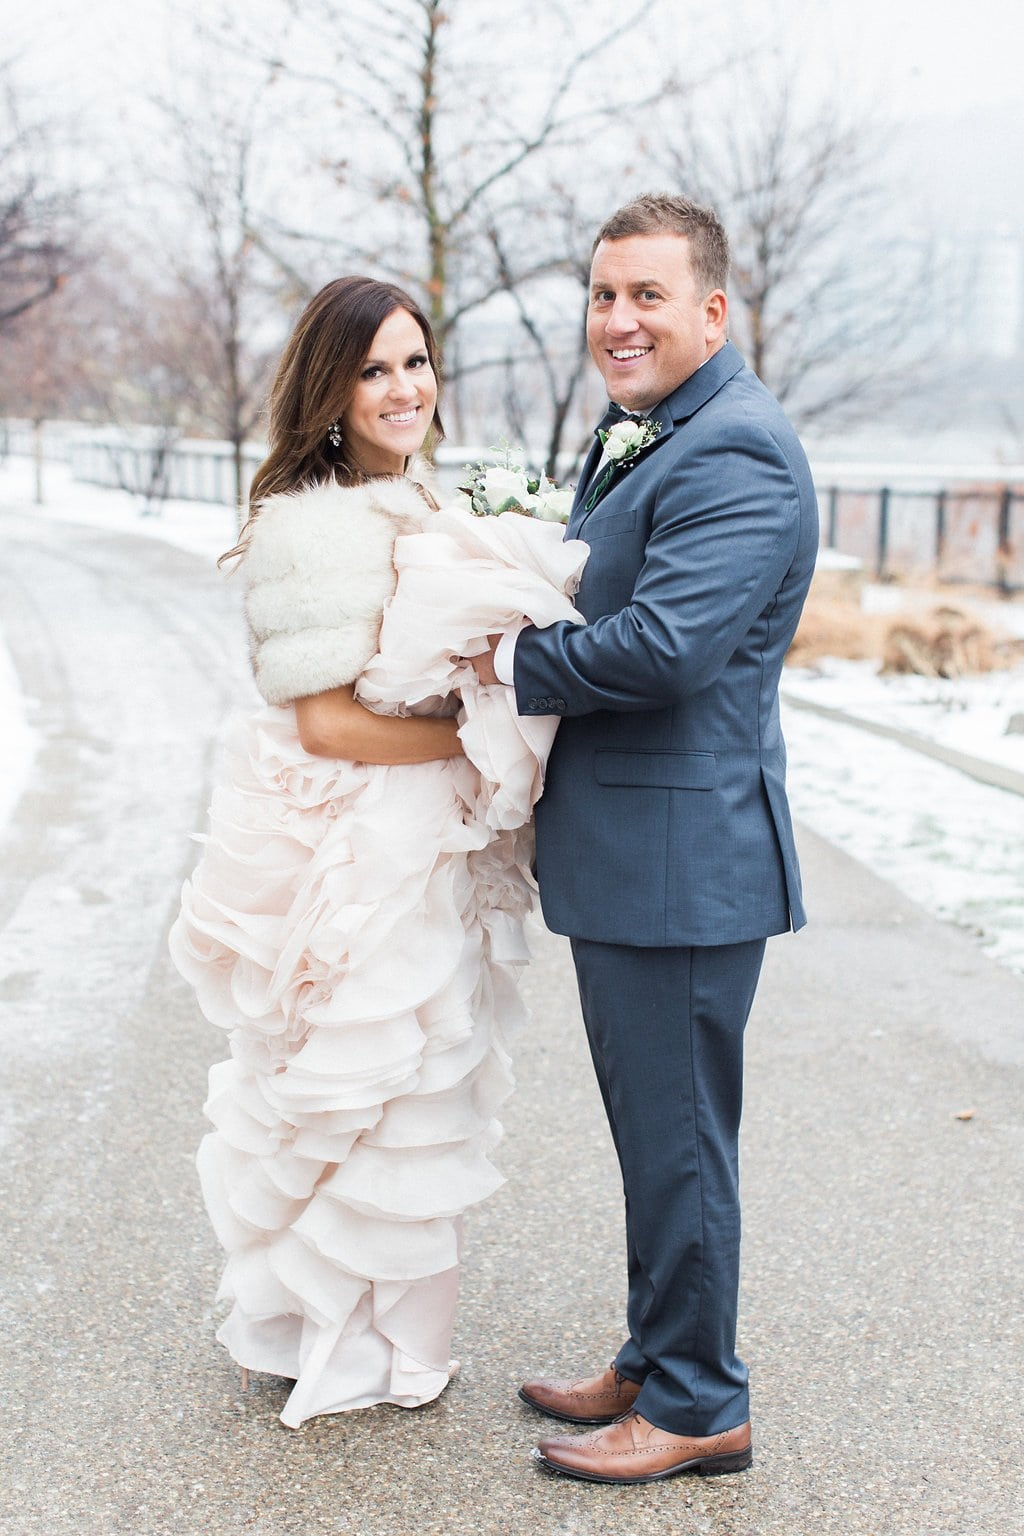 Portrait of the groom holding the bride's dress in the snow during their Pittsburgh winter wedding at J. Verno Studios - J Verno Studios Winter Wedding